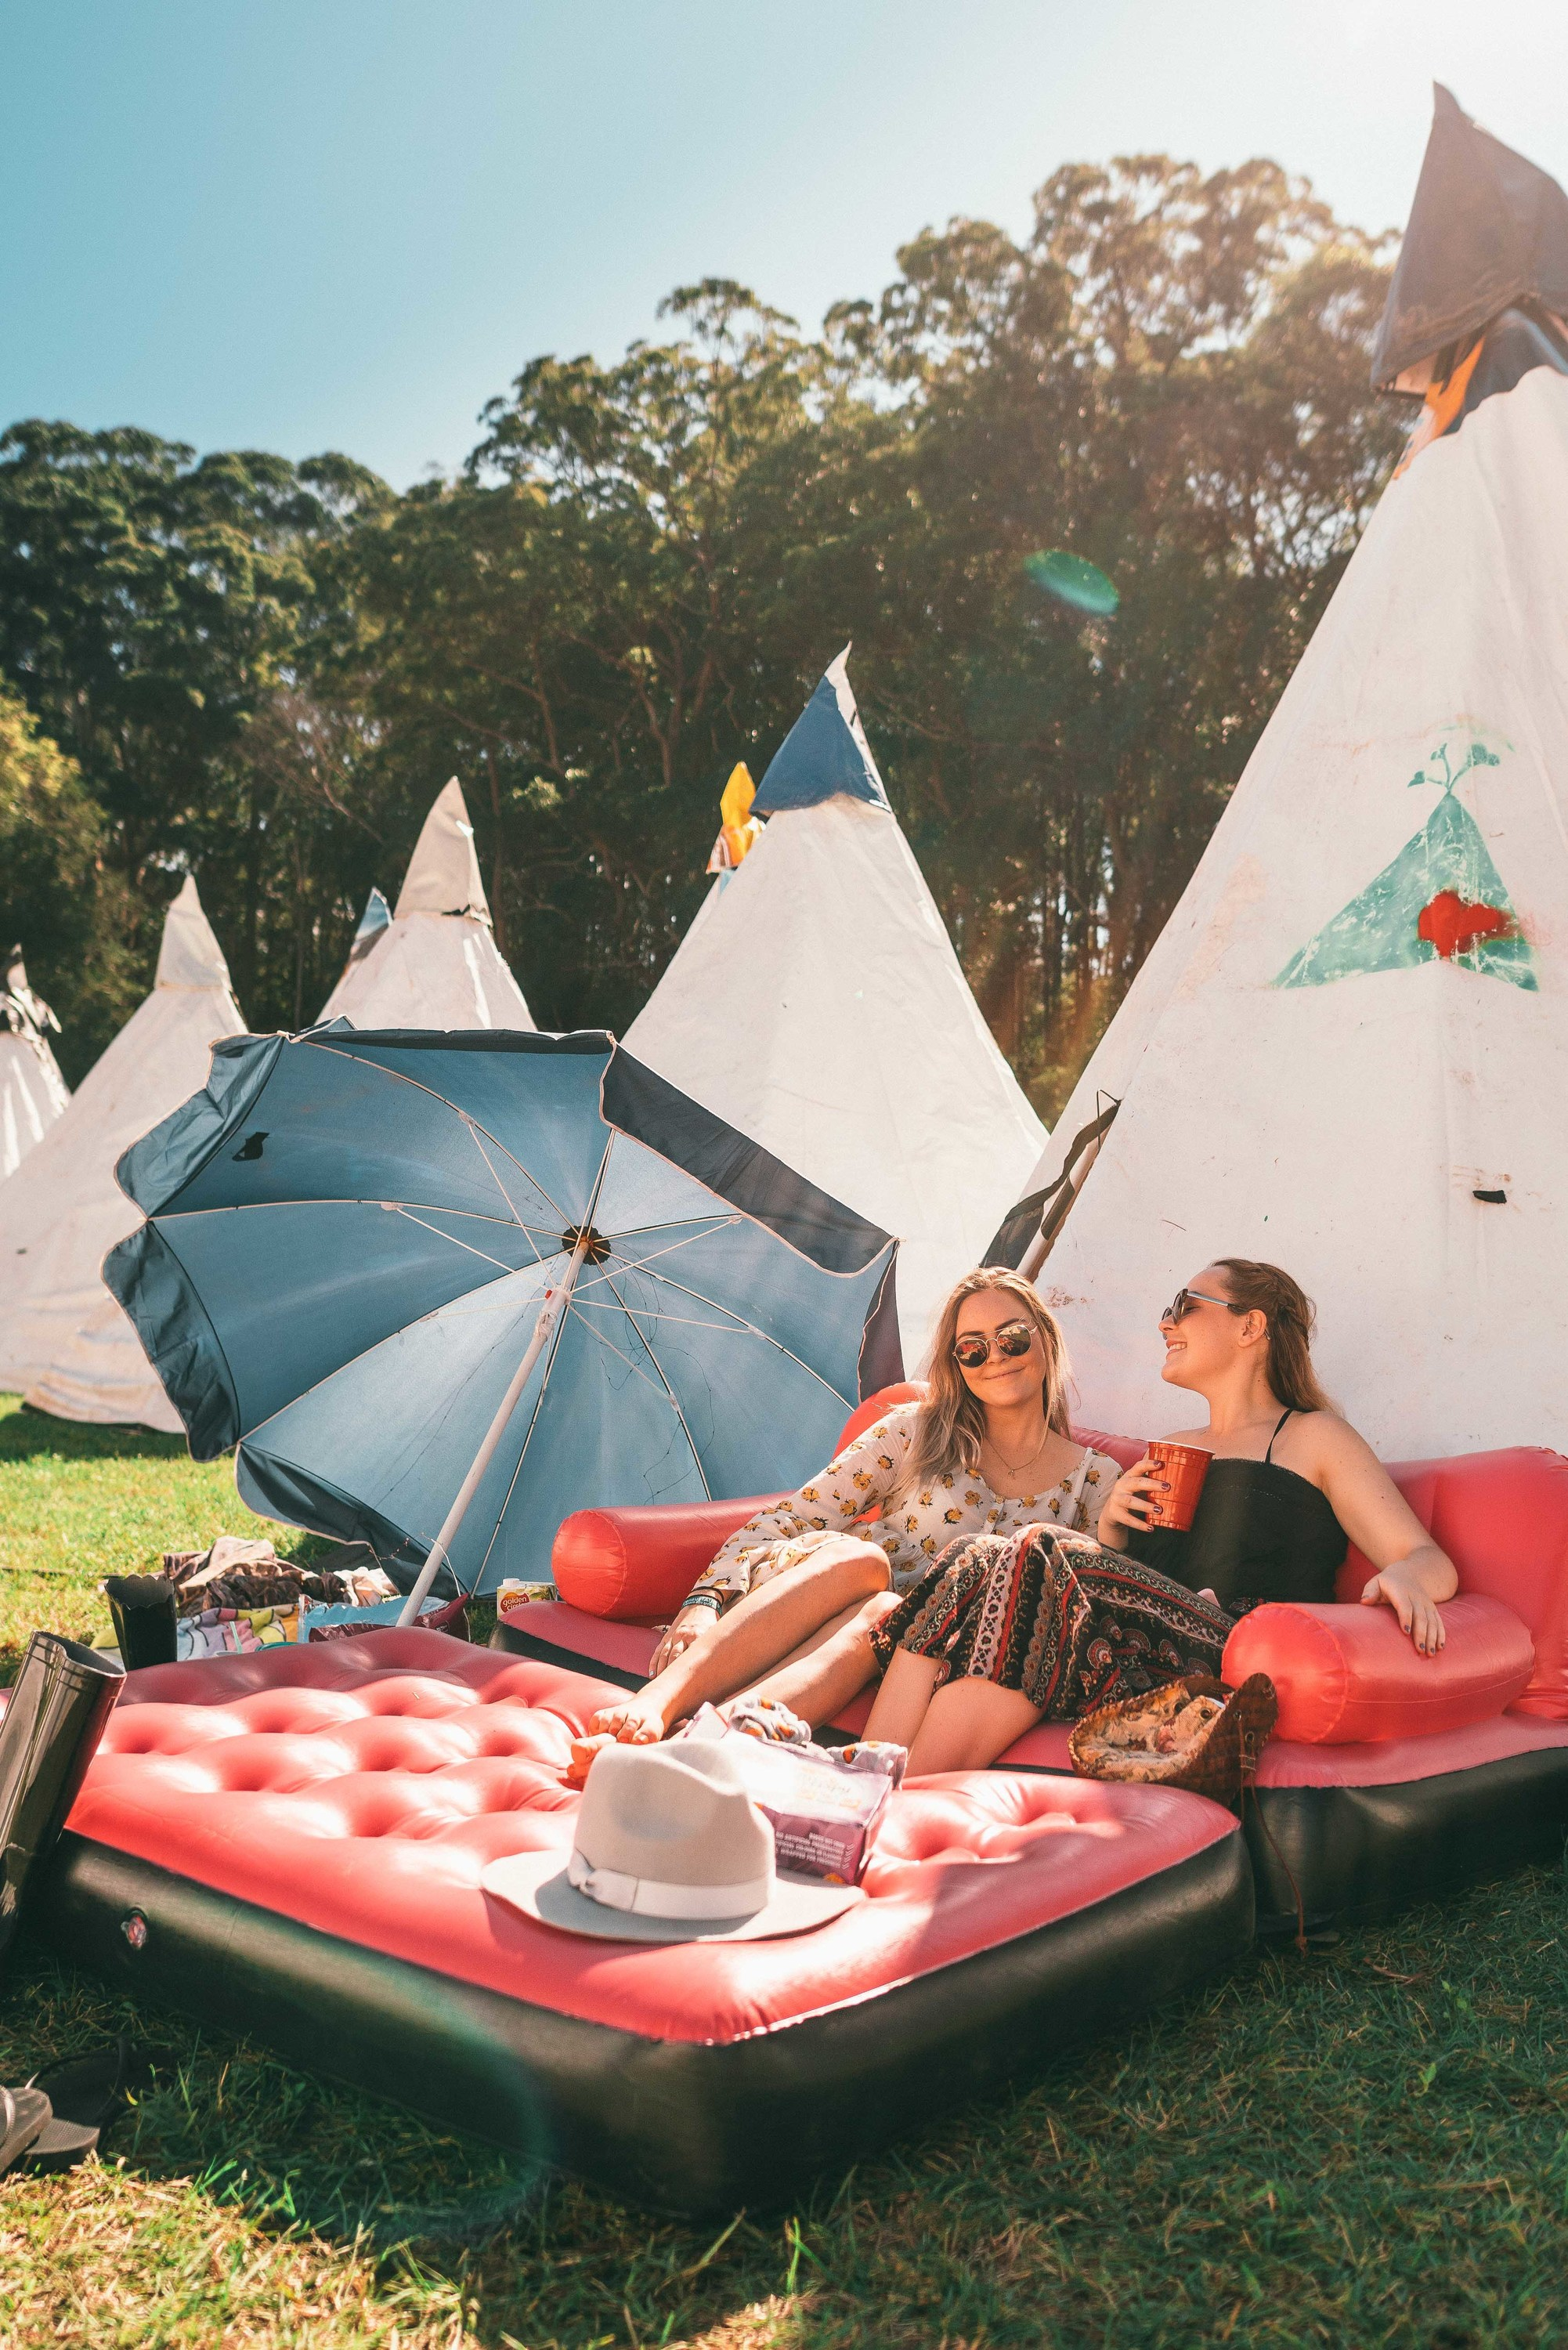 10 things we learned at Splendour in the Grass, Day One